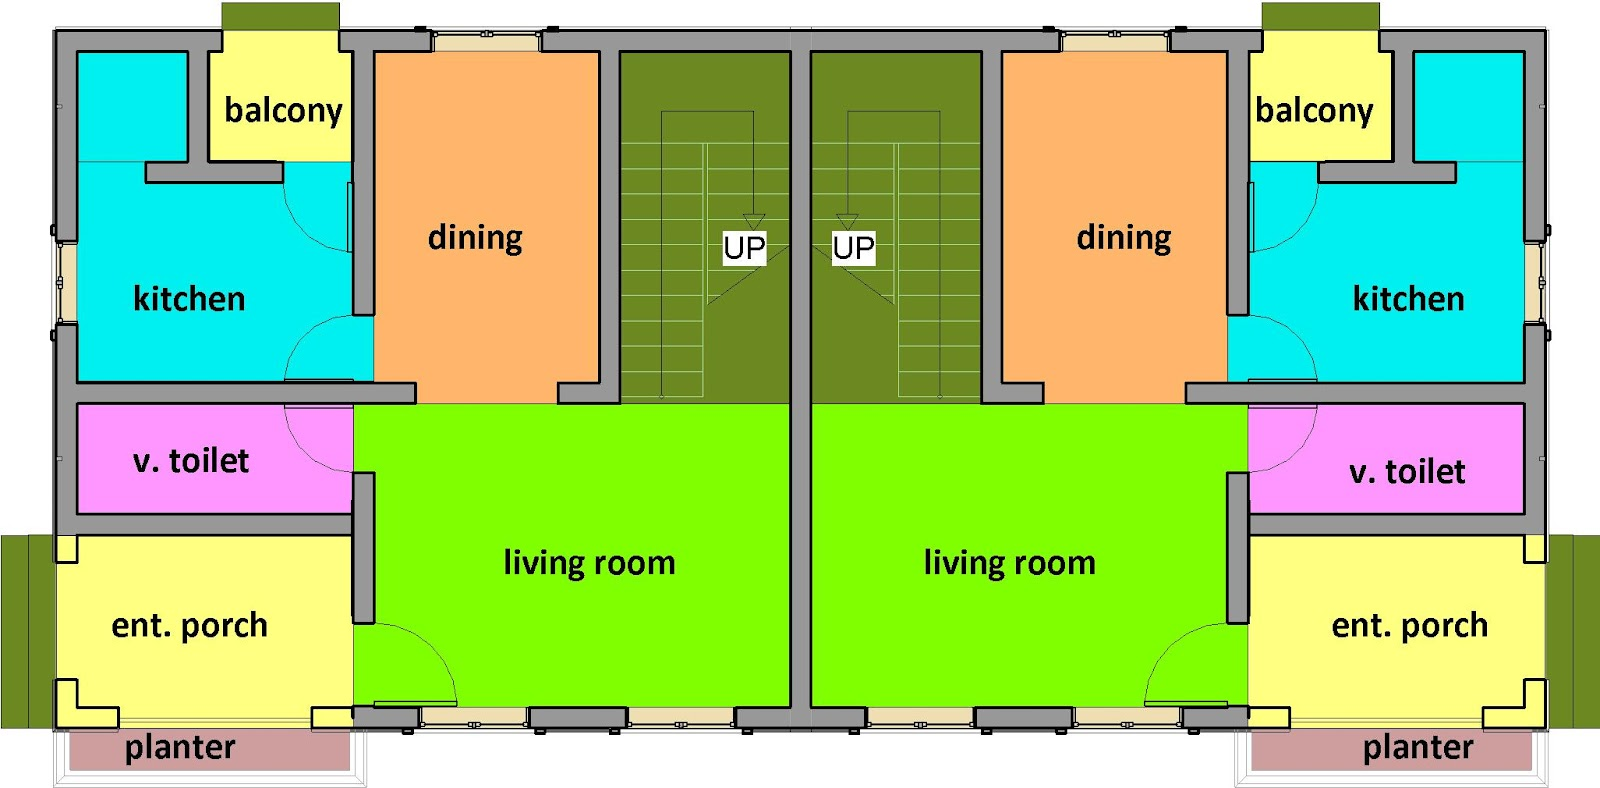 1 Bedroom Apartment Building Plans super magig interior